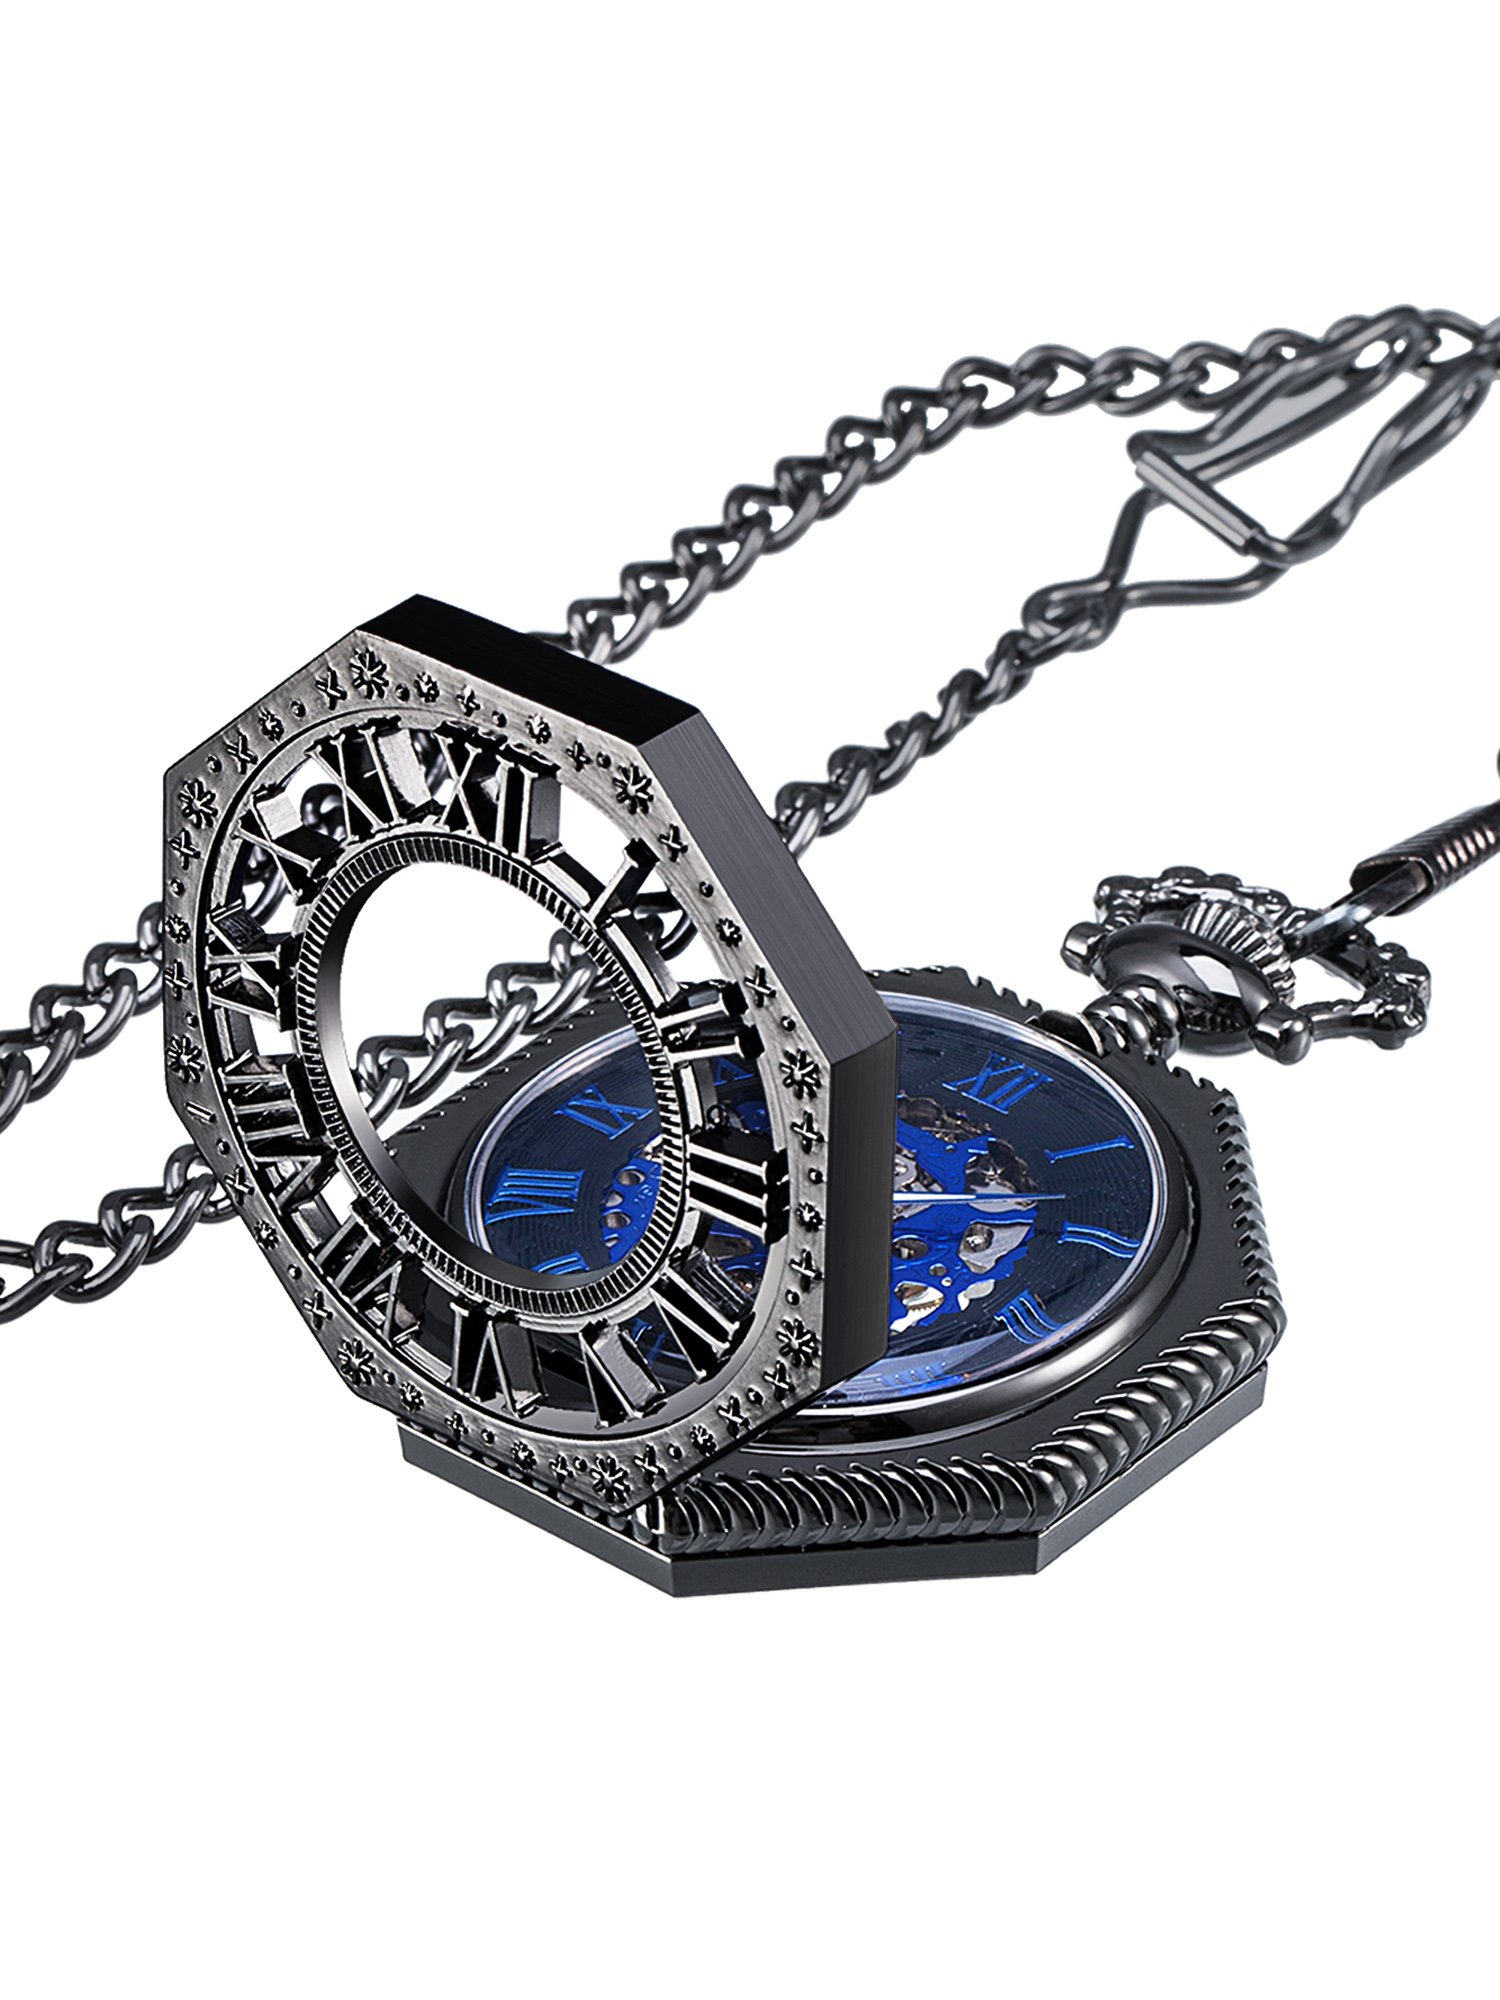 Mudder Vintage Mechanical Hand-Wind Skeleton Pocket Watch with Chain Xmas Gift (Black)